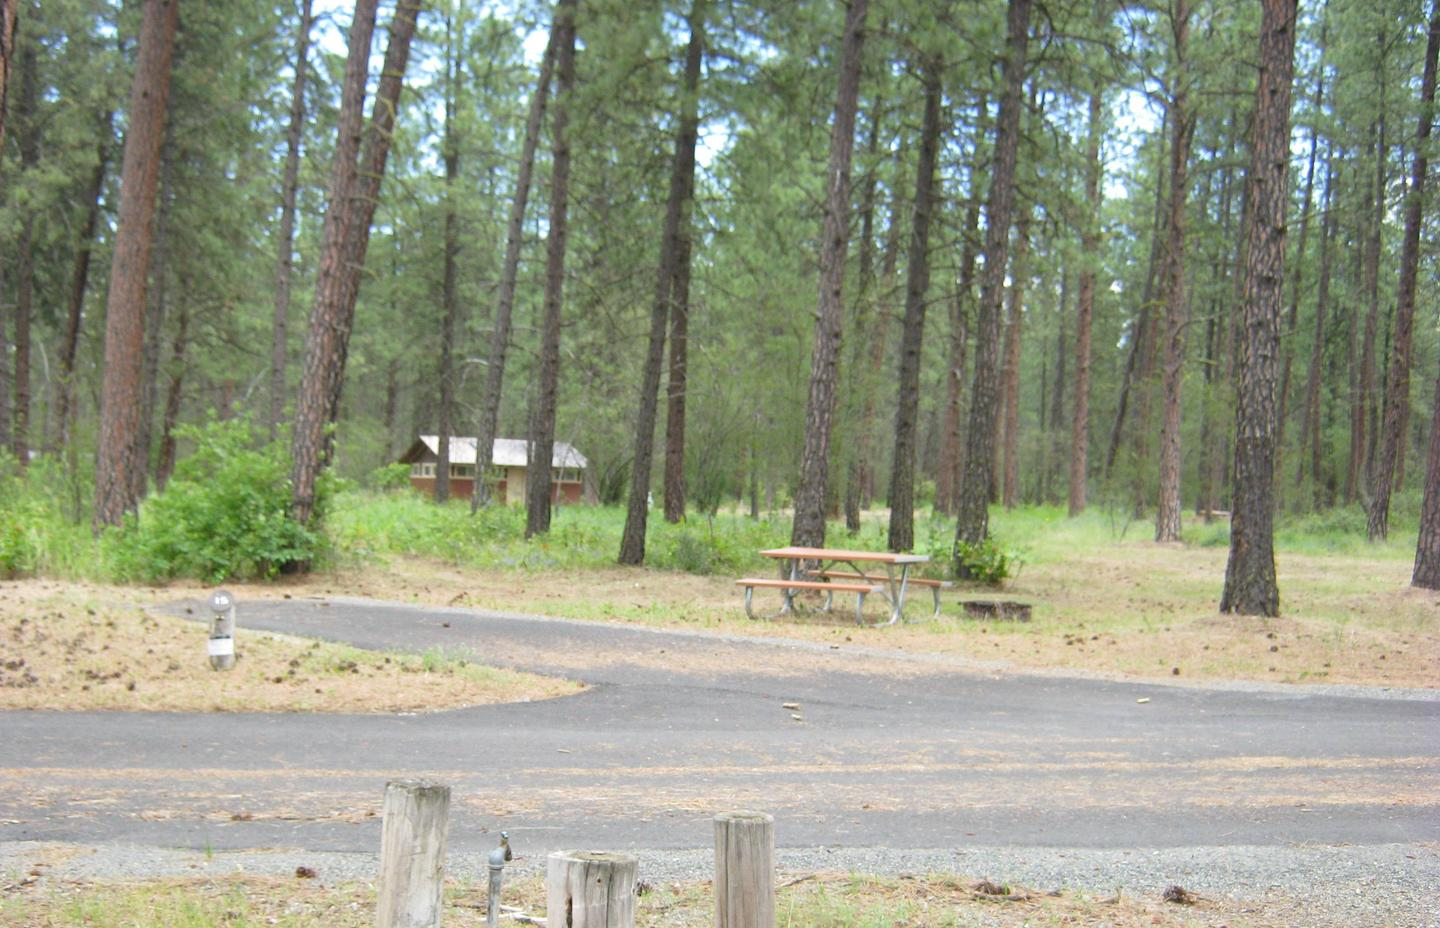 Site 15, back inSite 15, Back in, Trees and comfort station in background